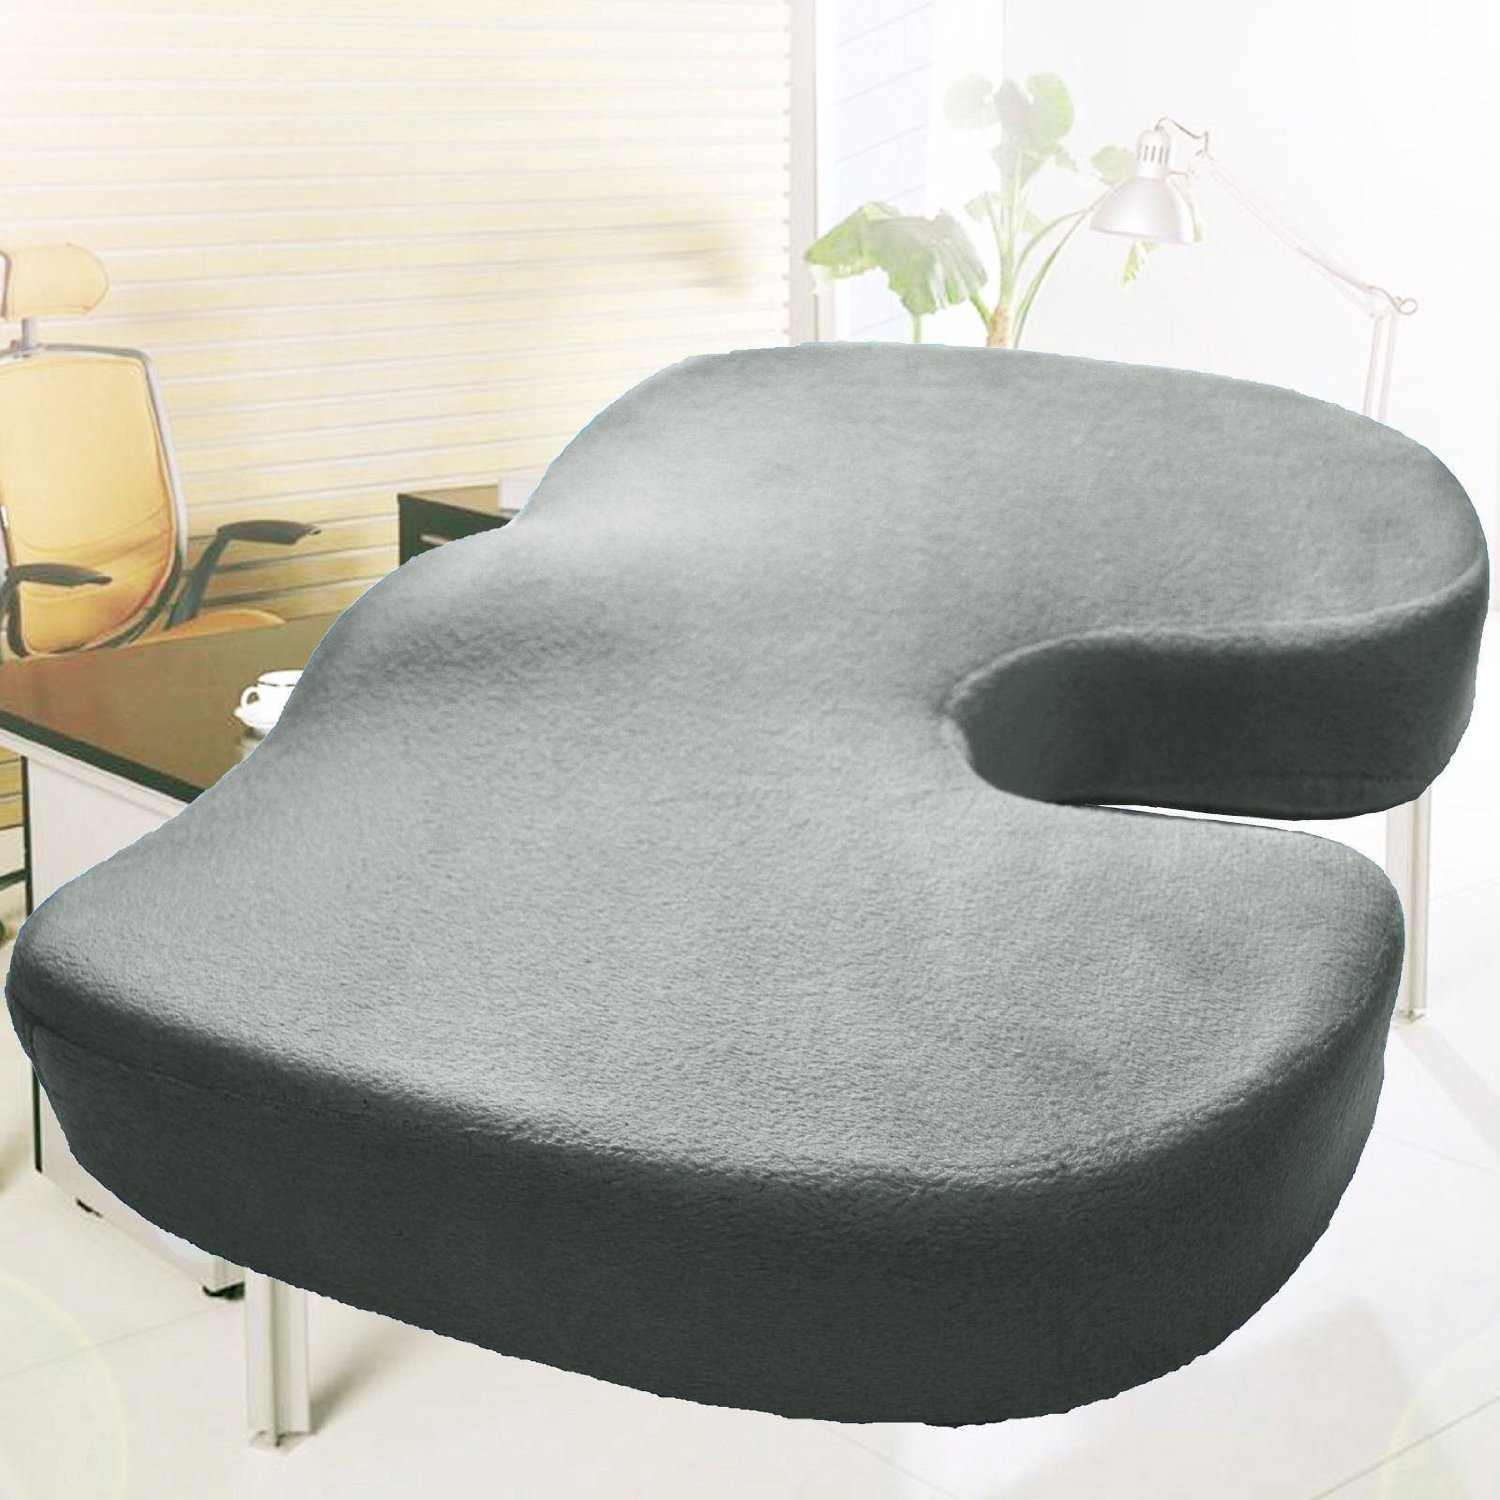 Memory Foam Coccyx Orthoped Car Seat Office Cushion Lumbar Pain Relief Pillow (Gray)